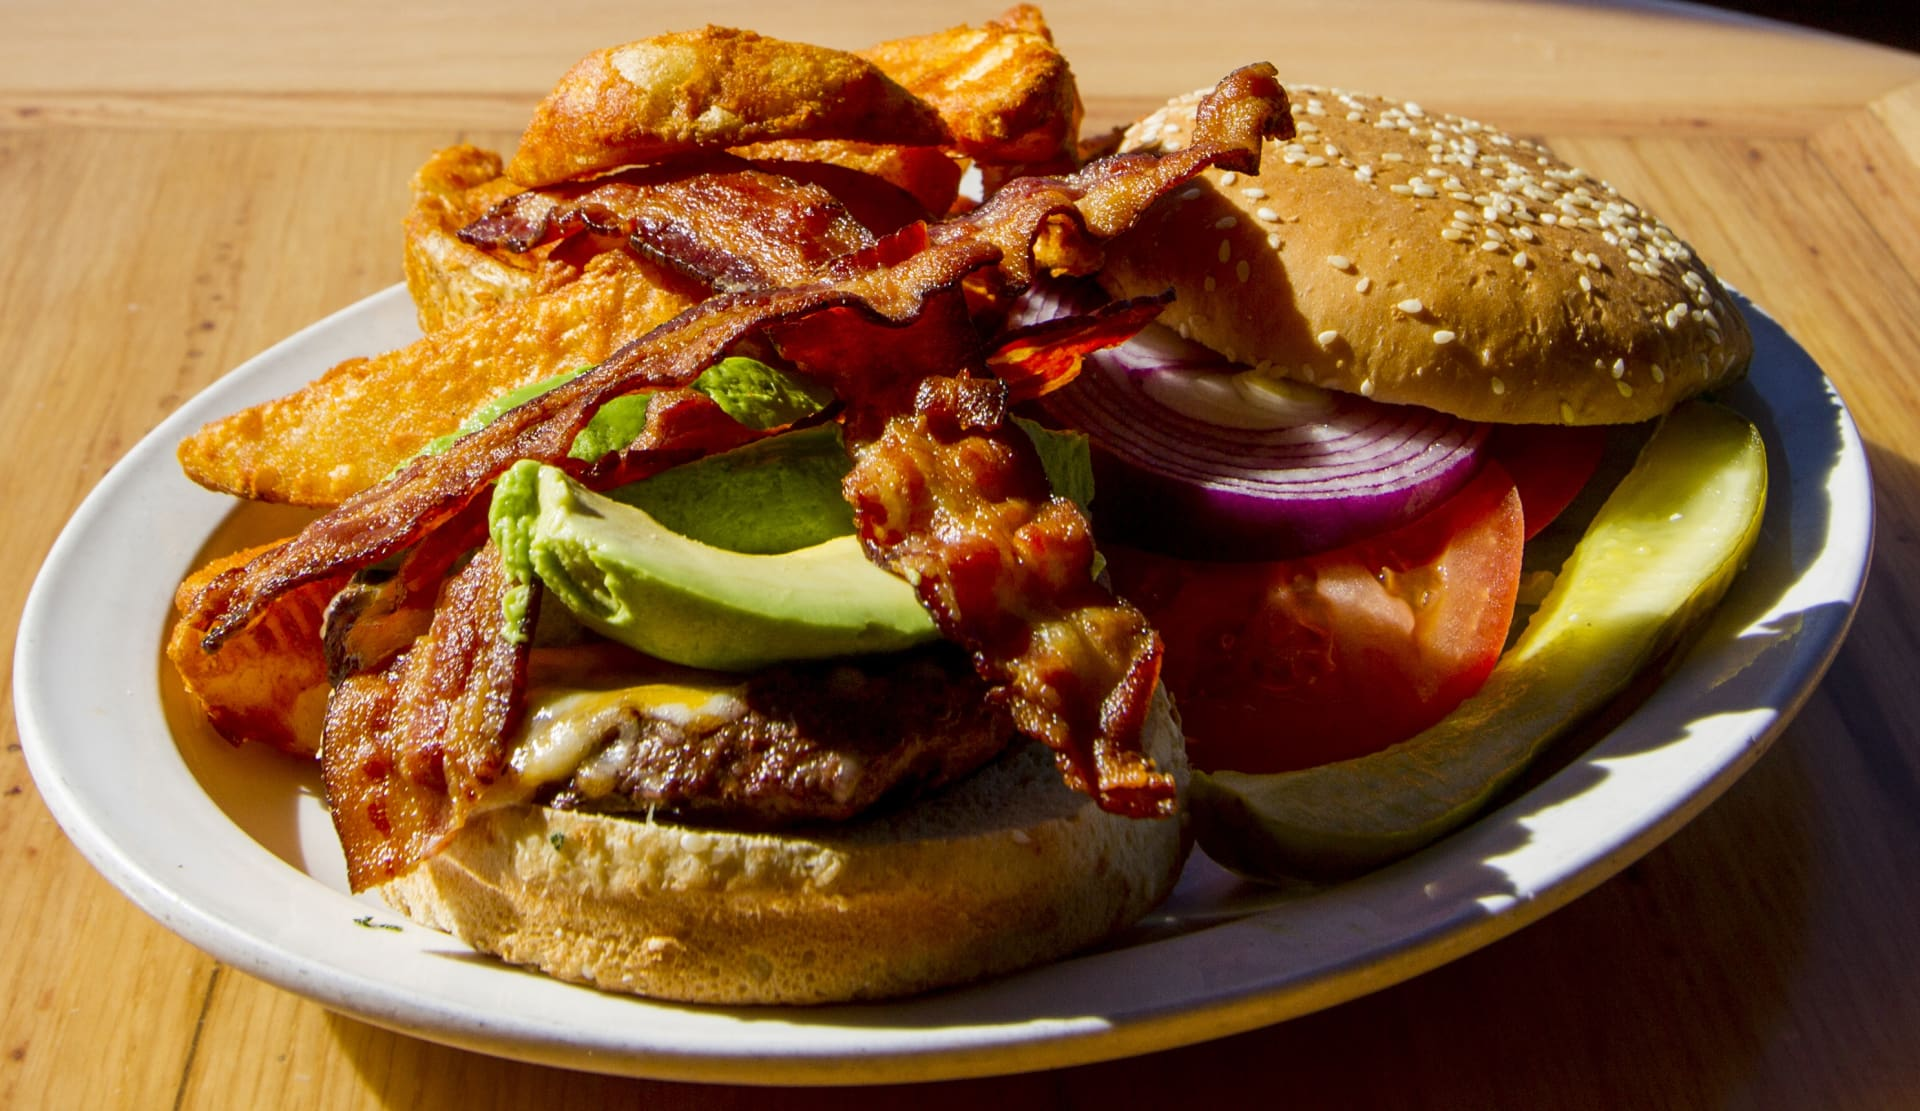 Avocado Bacon Burger